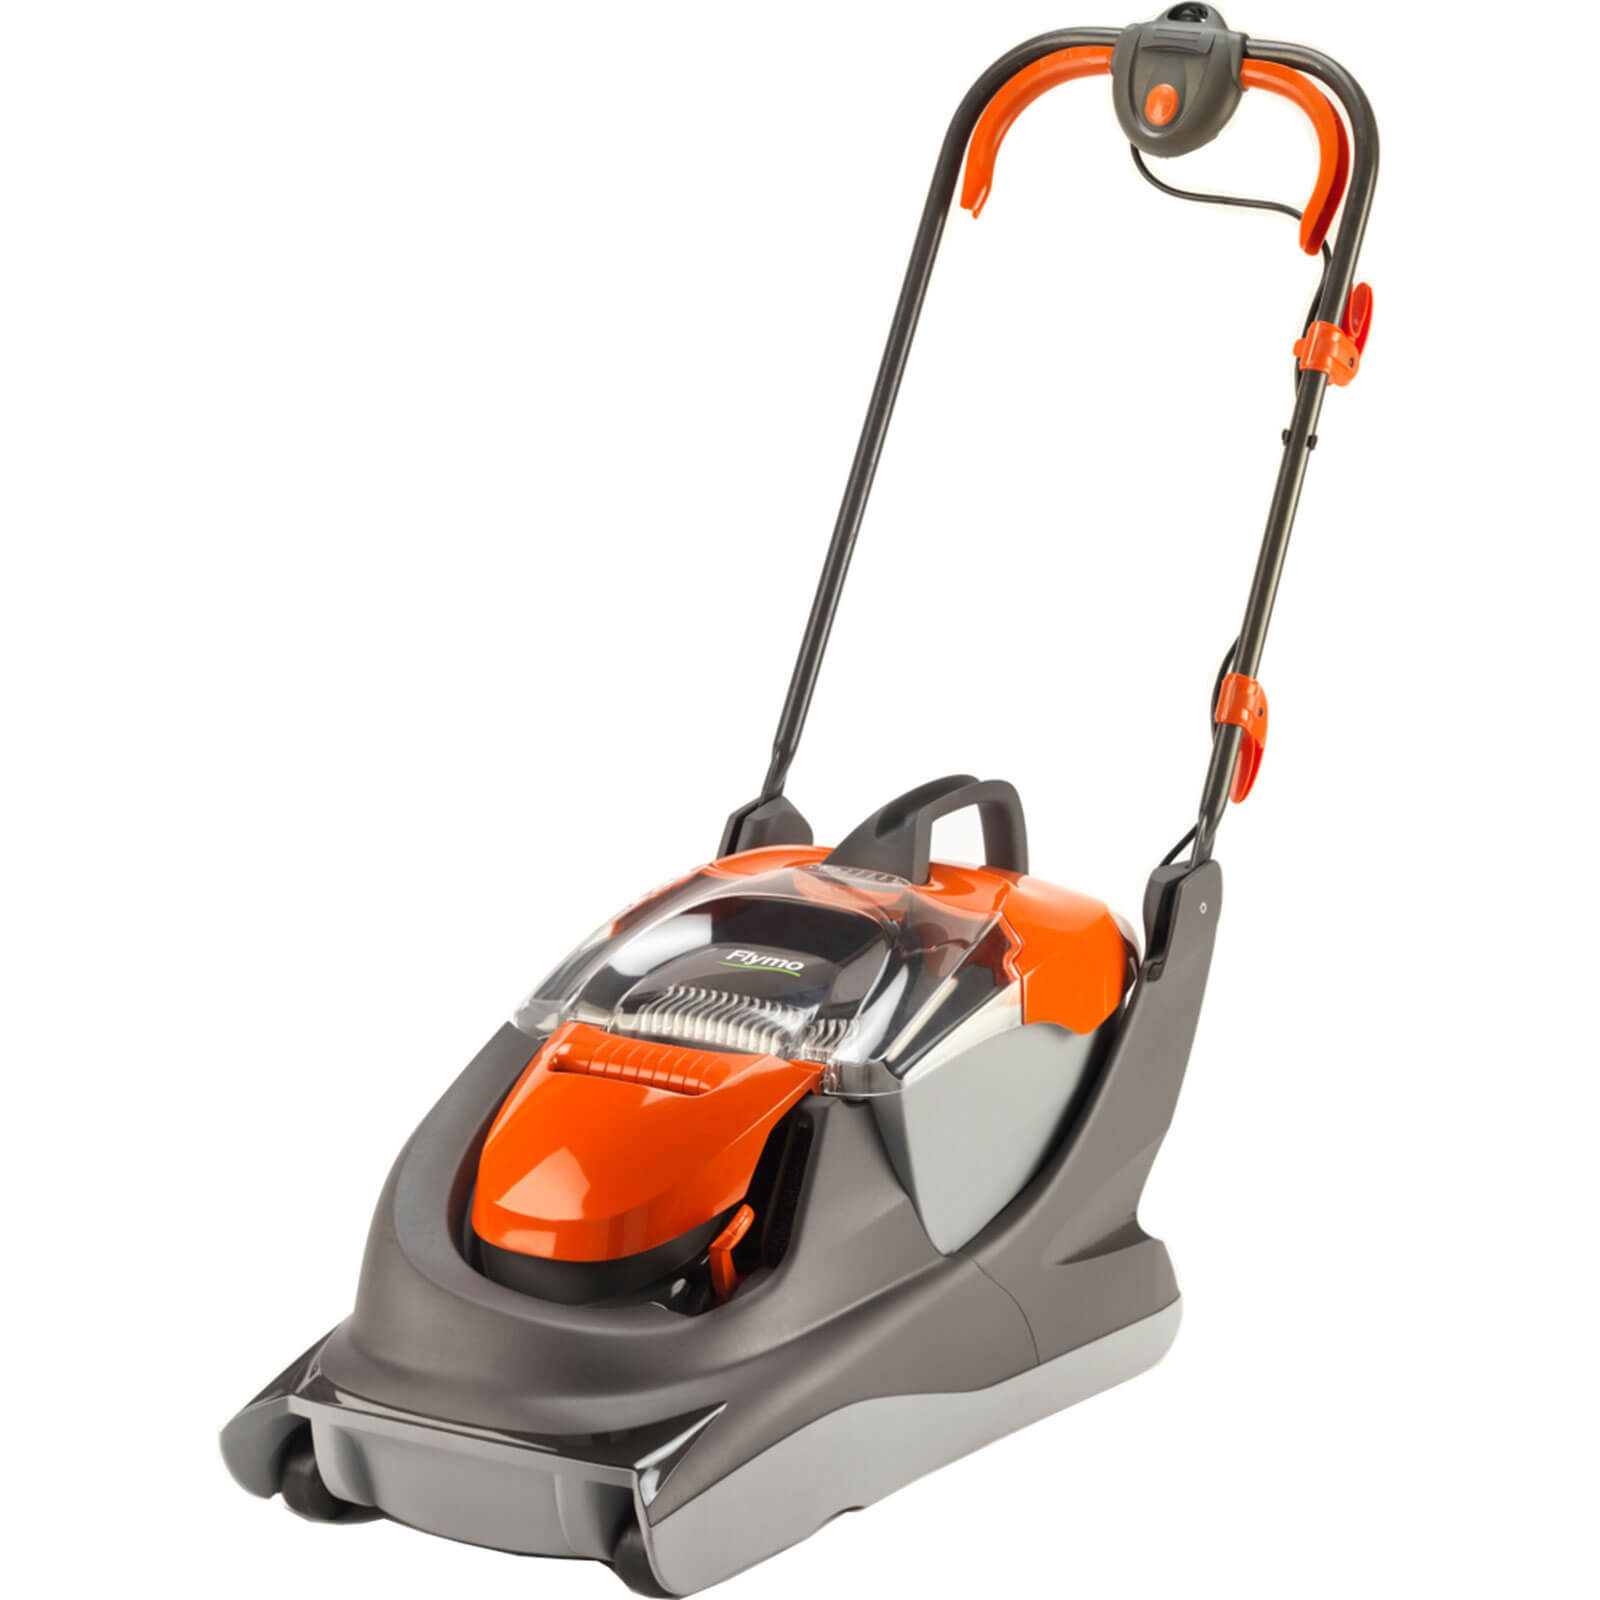 Image of Flymo ULTRAGLIDE Hover Lawnmower 360mm 240v